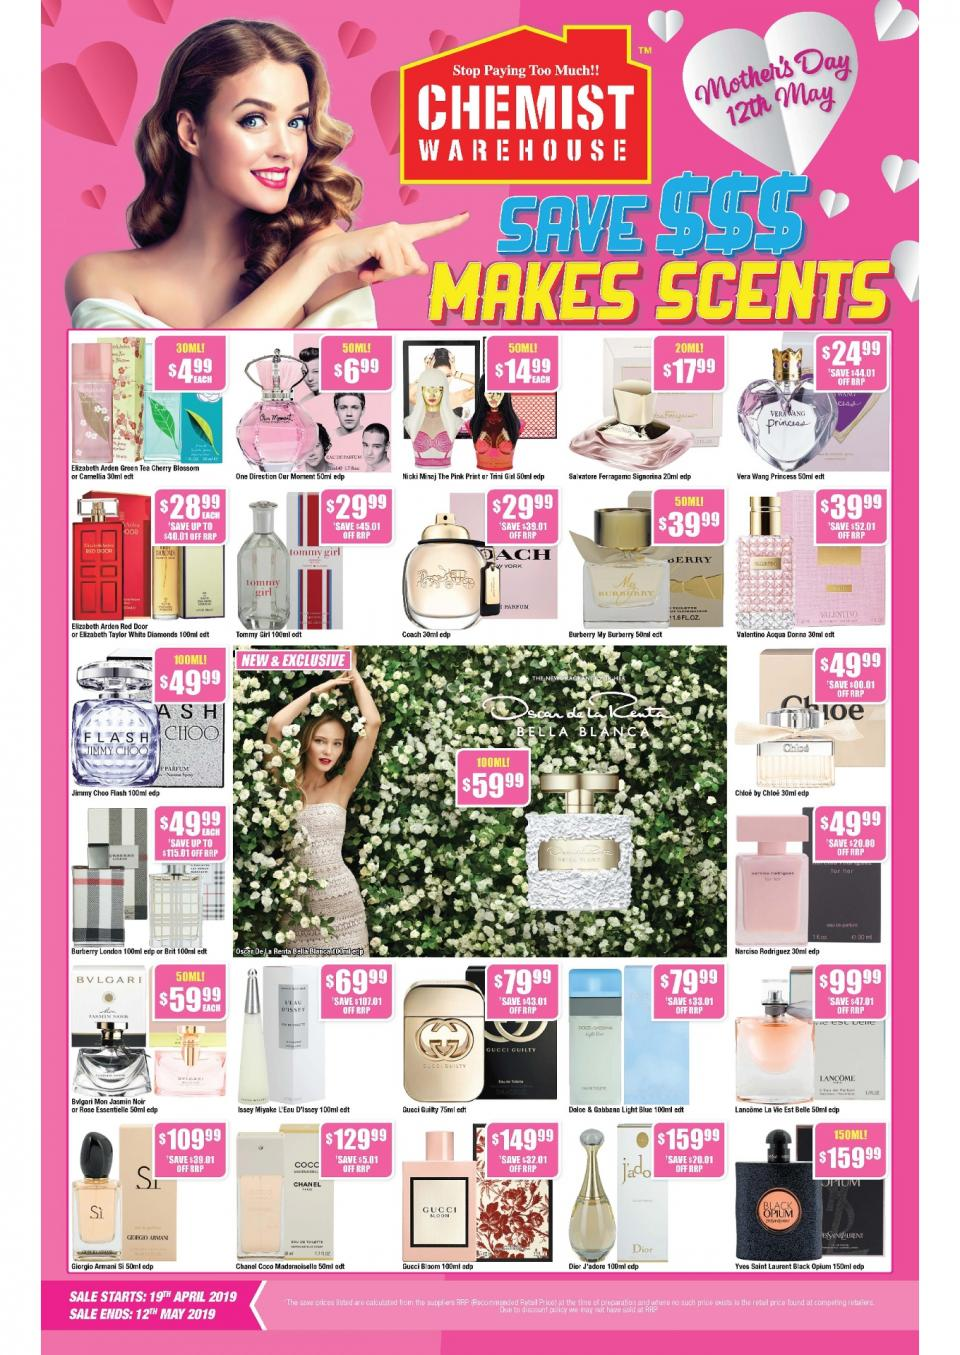 chemist warehouse catalogue 19 apr 12 may 2019